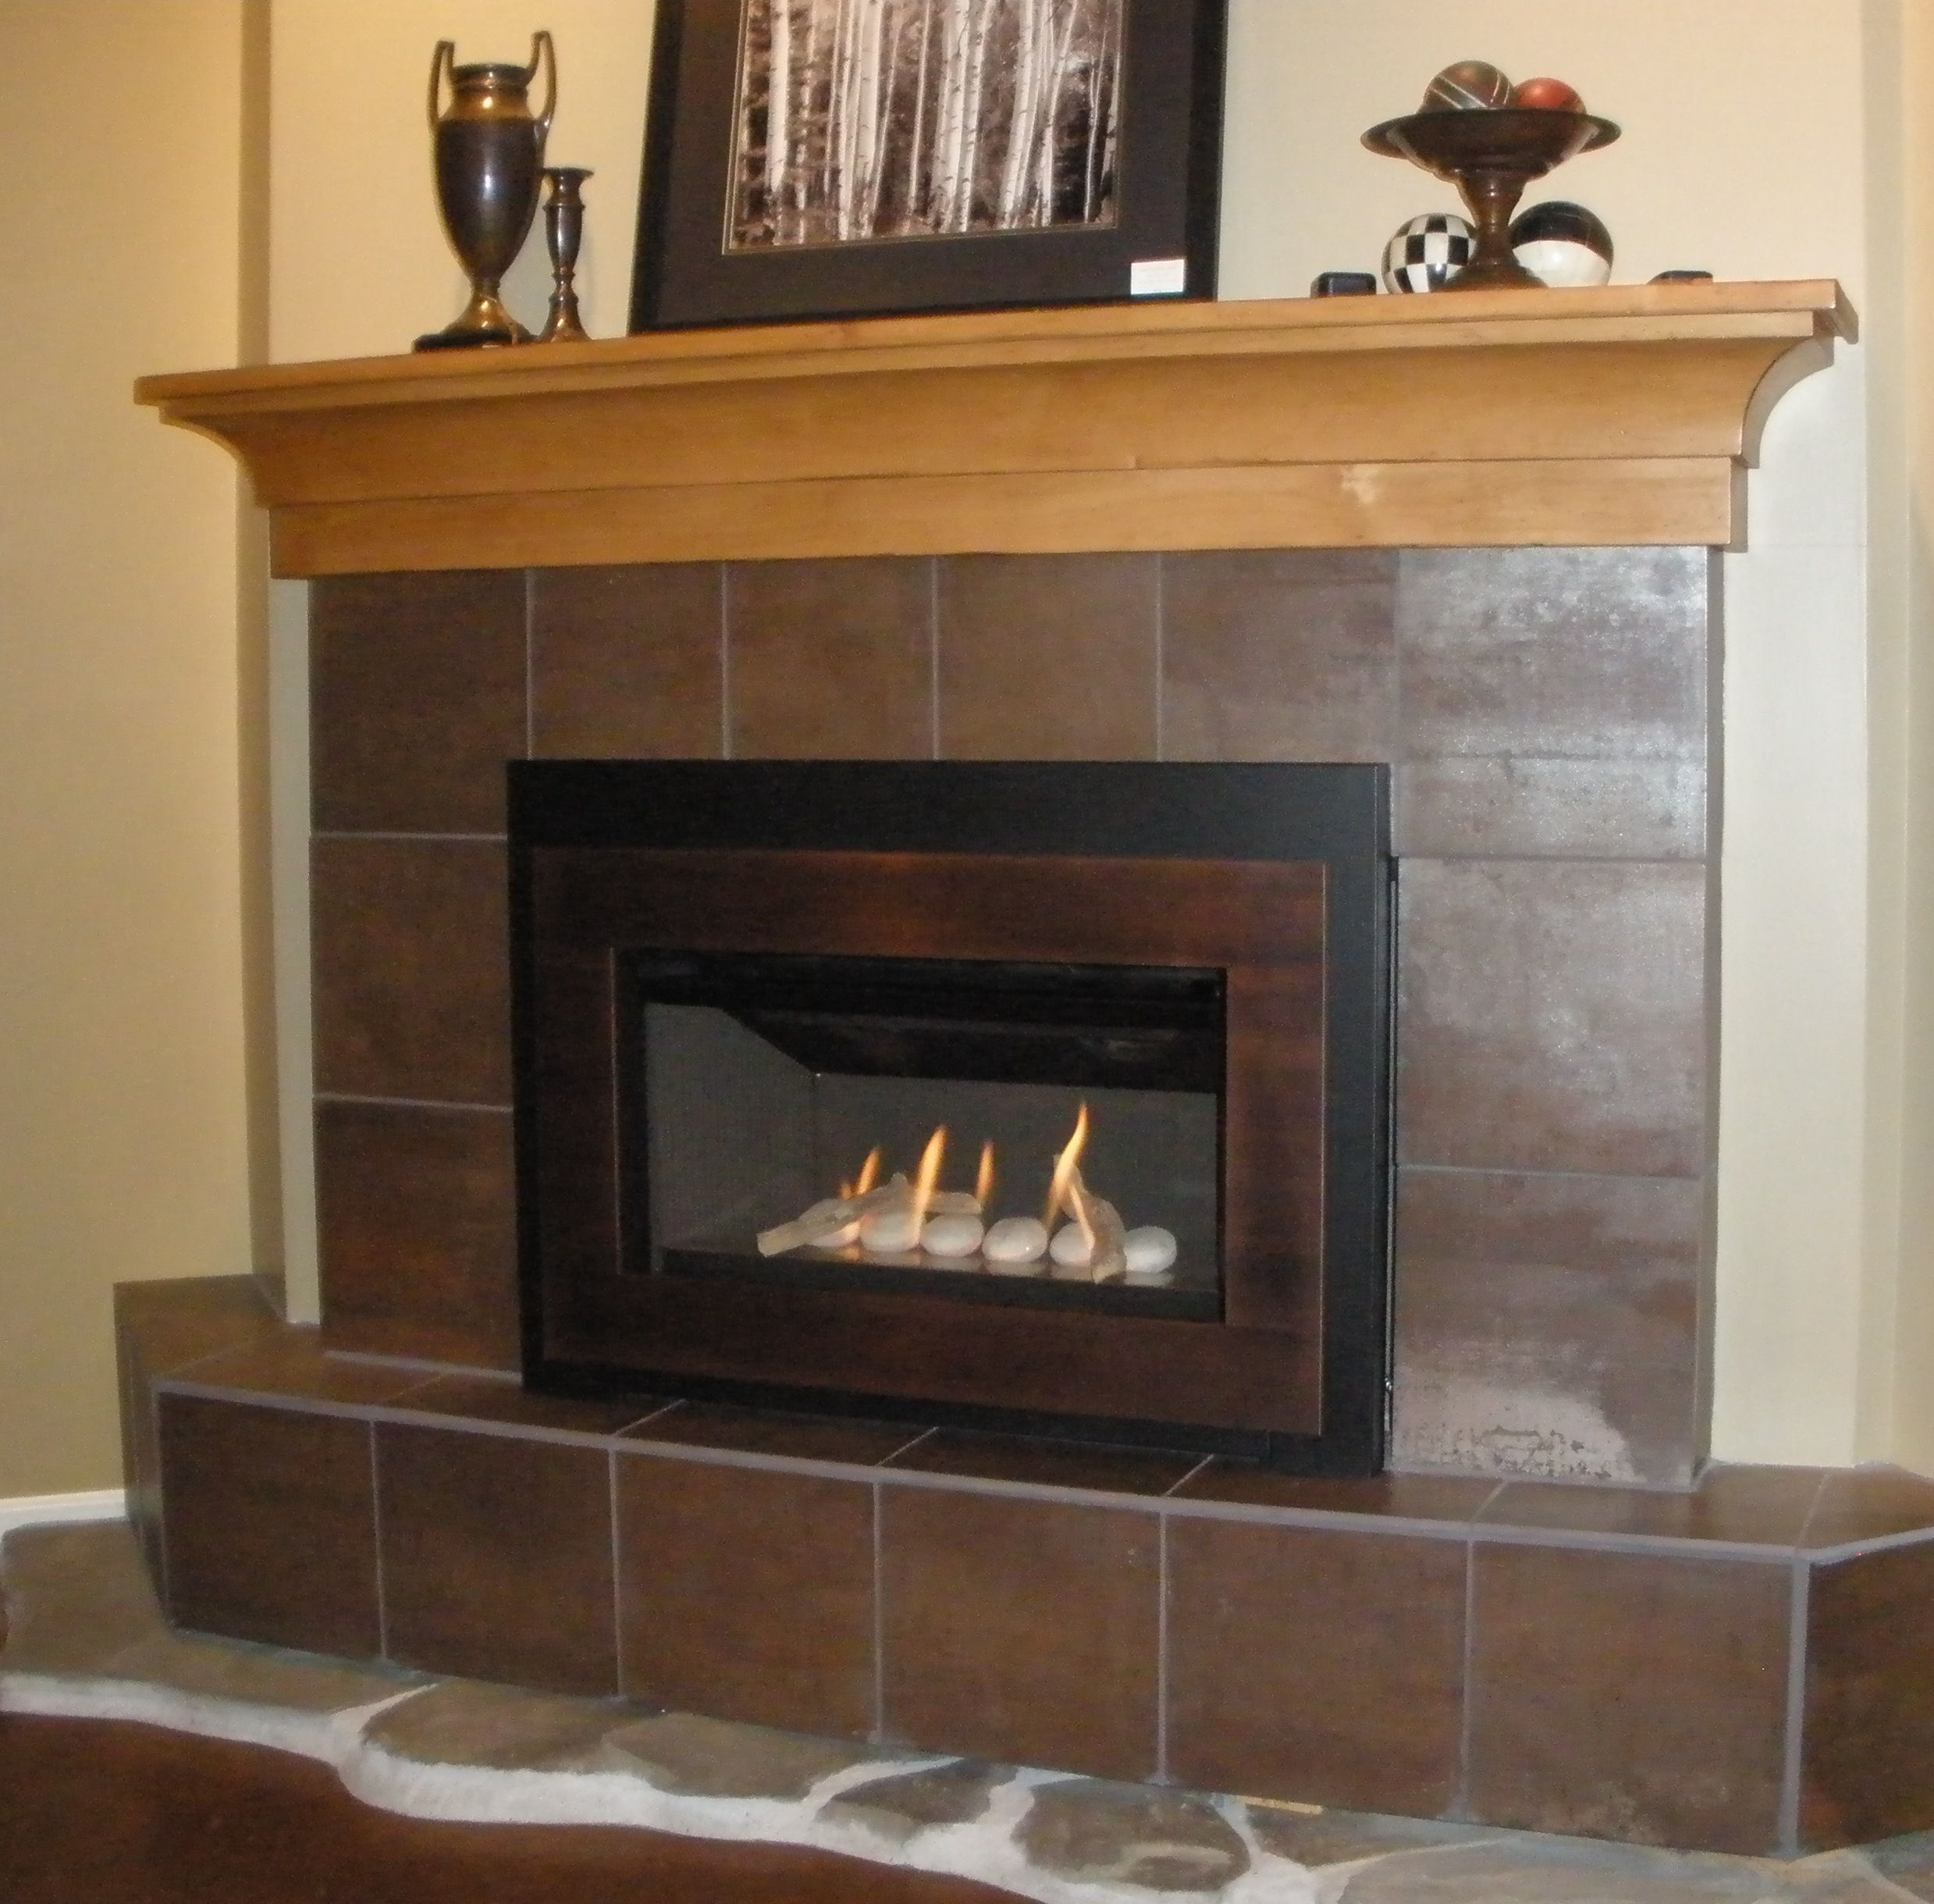 Gas Fireplace Burner Awesome Pin On Valor Radiant Gas Fireplaces Midwest Dealer